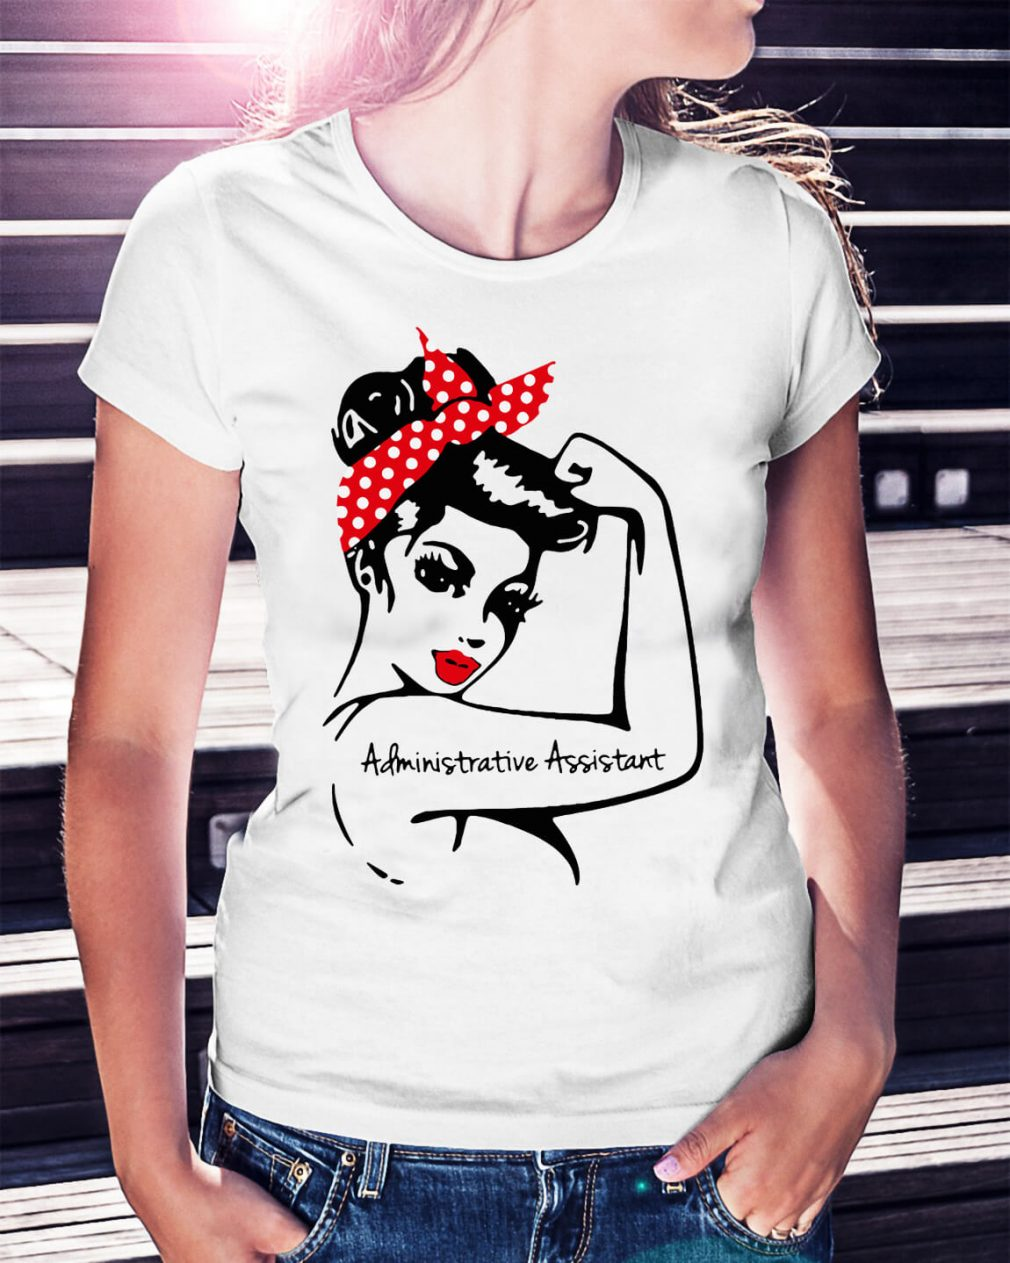 Rosie pin up breast cancer Administrative assistant shirt